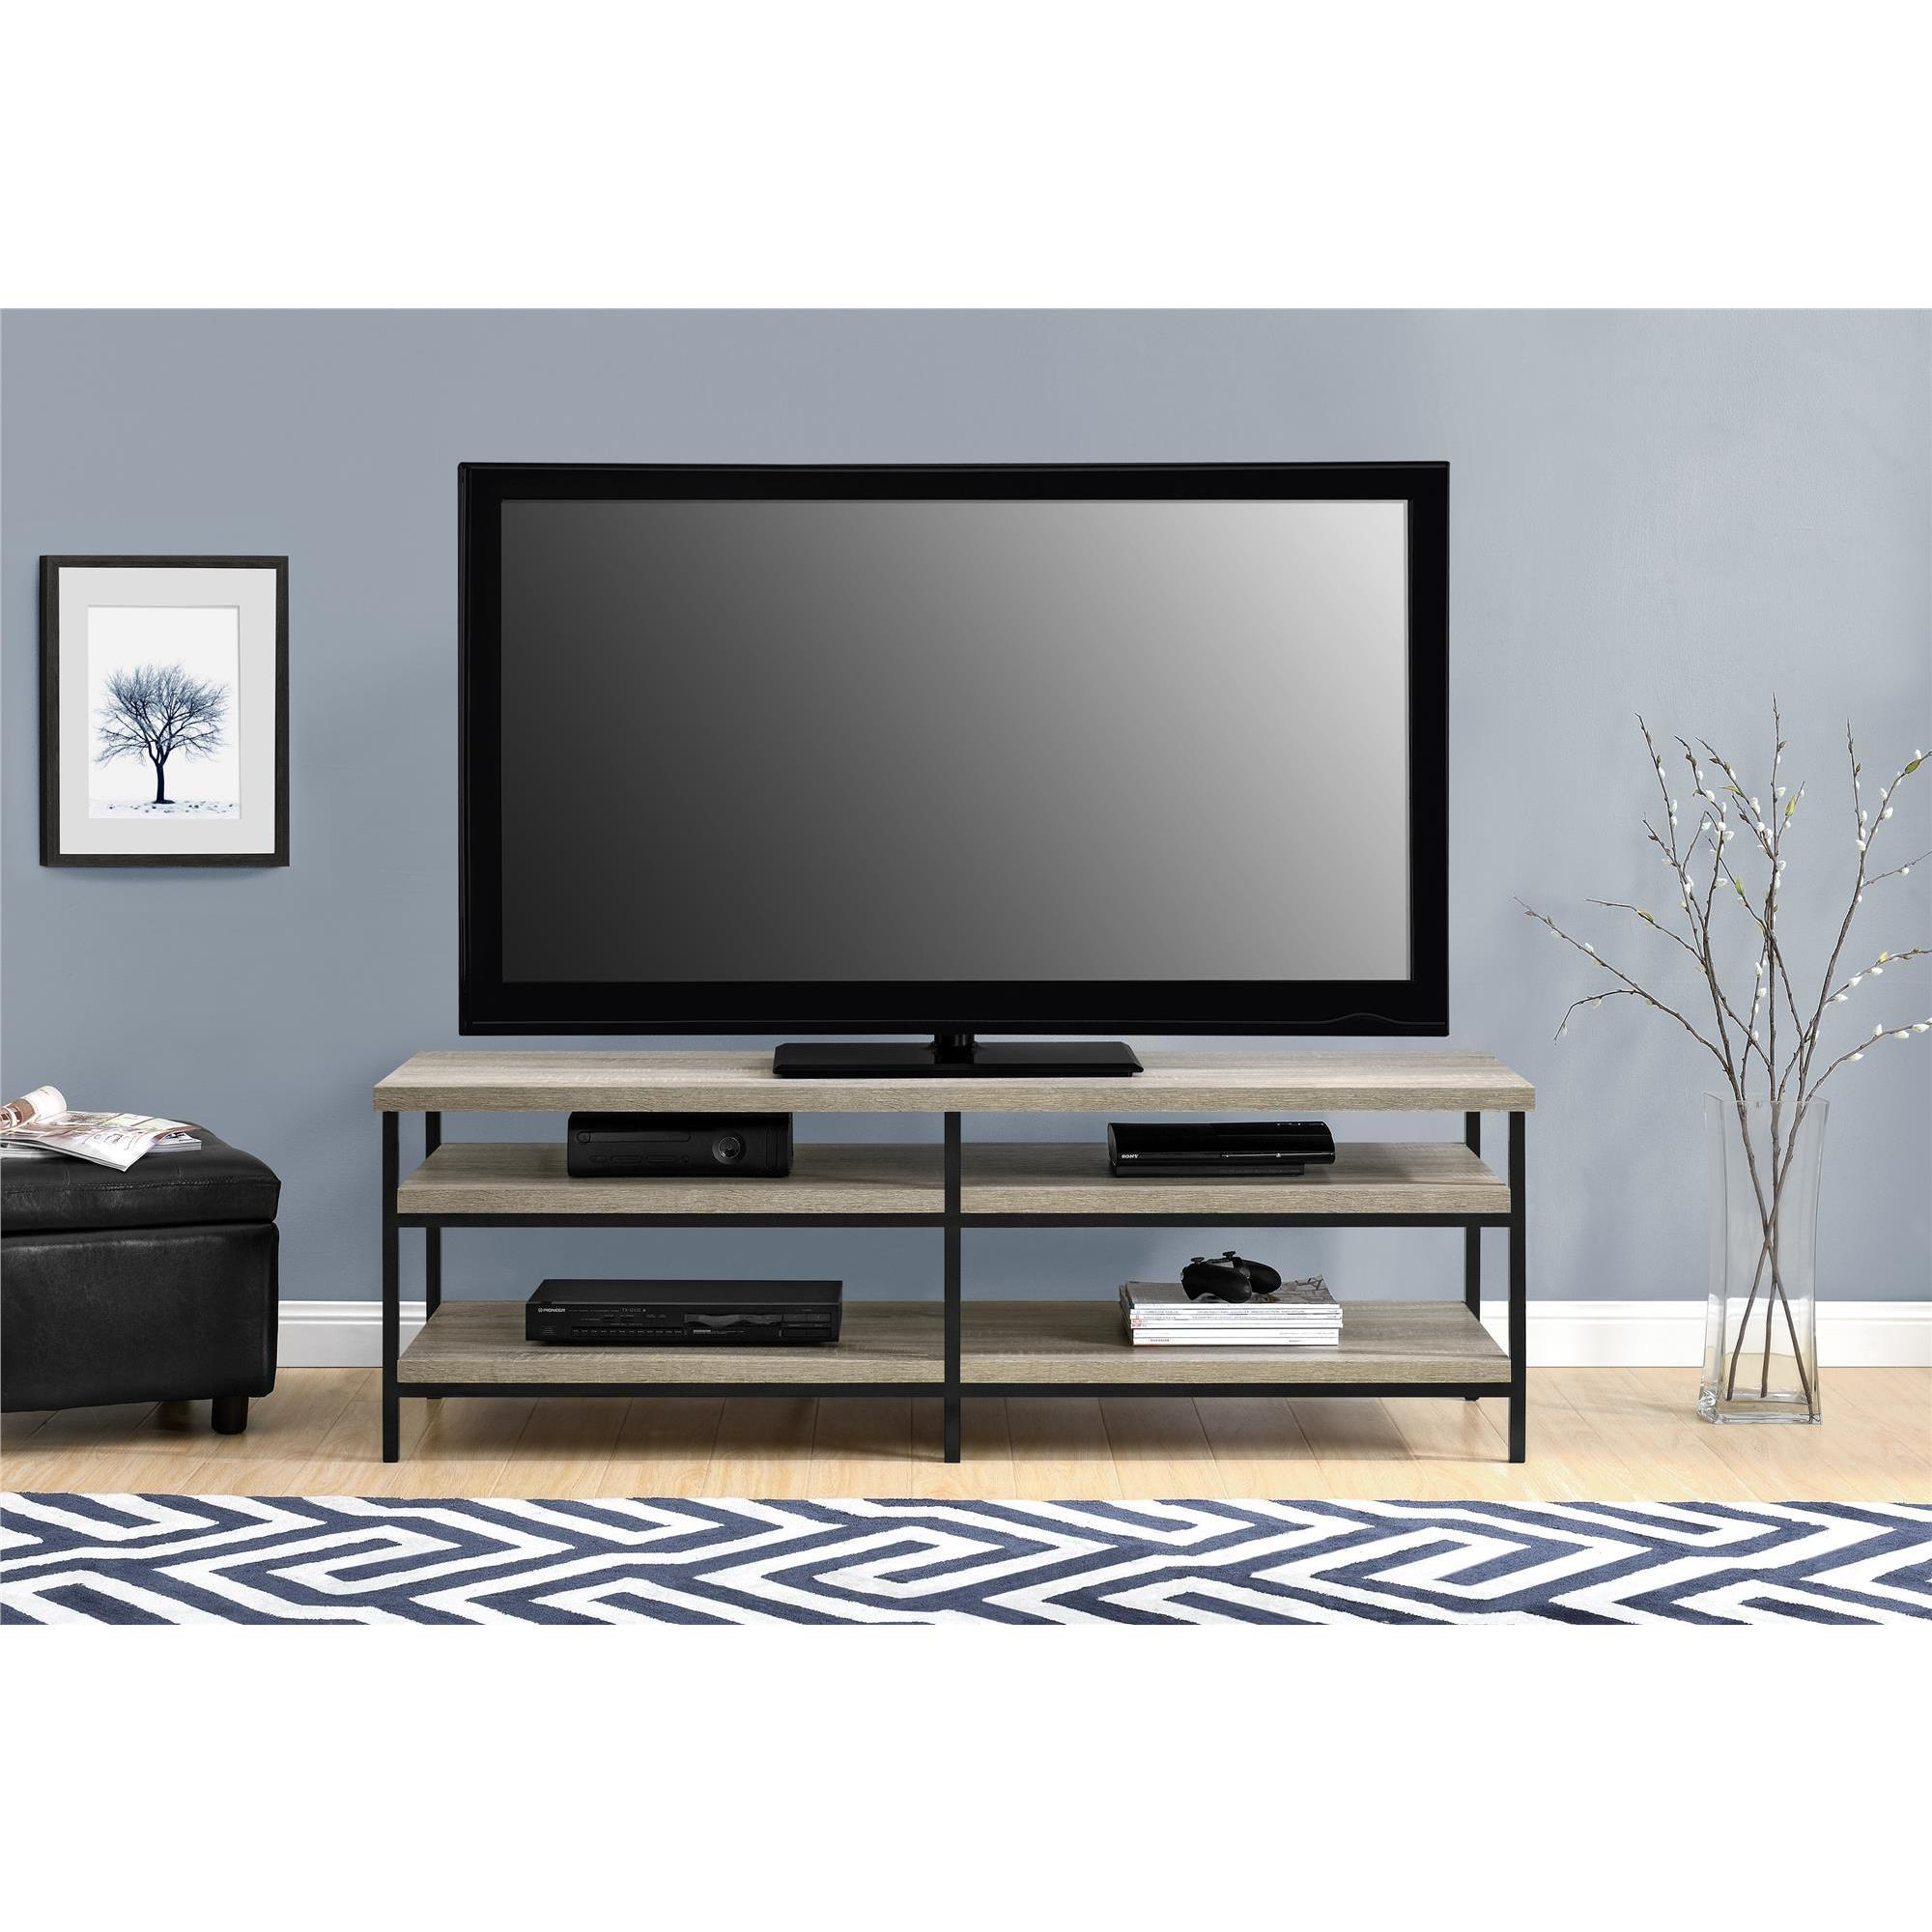 Shop Avenue Greene Northway Weathered Oak 60 Inch Tv Stand Free